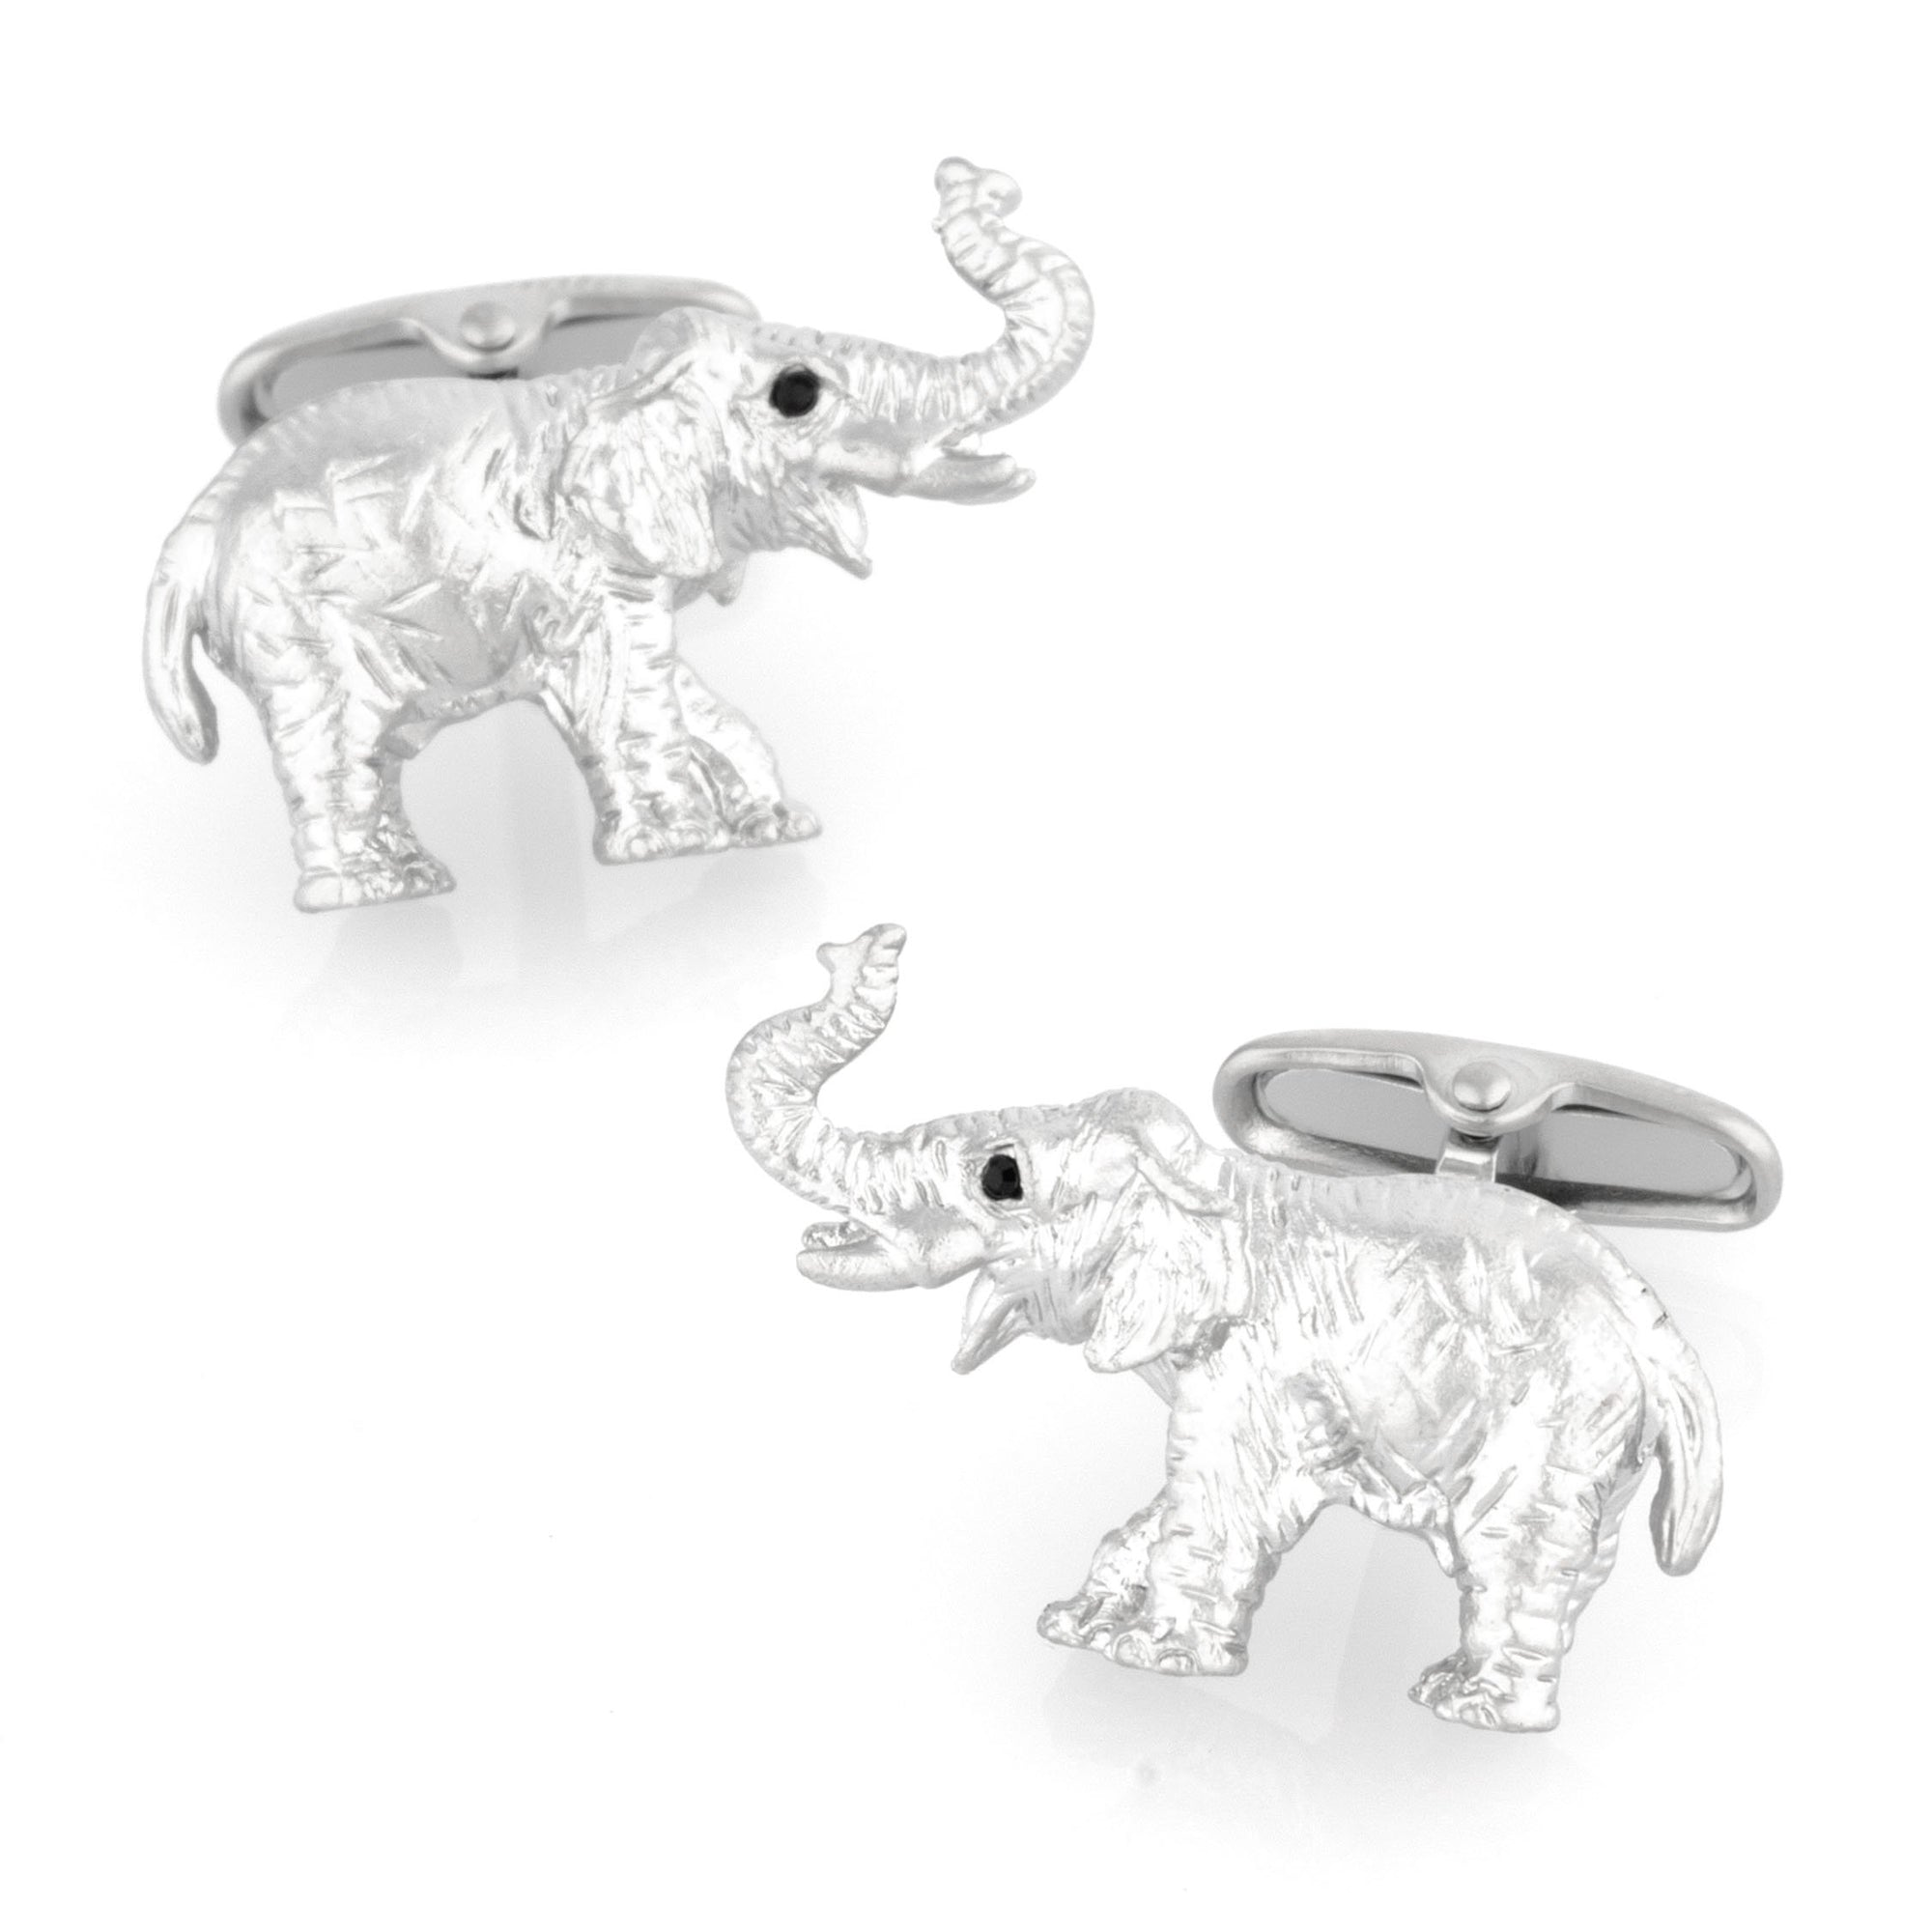 Brushed Silver Elephant Cufflinks Novelty Cufflinks Clinks Australia Brushed Silver Elephant Cufflinks